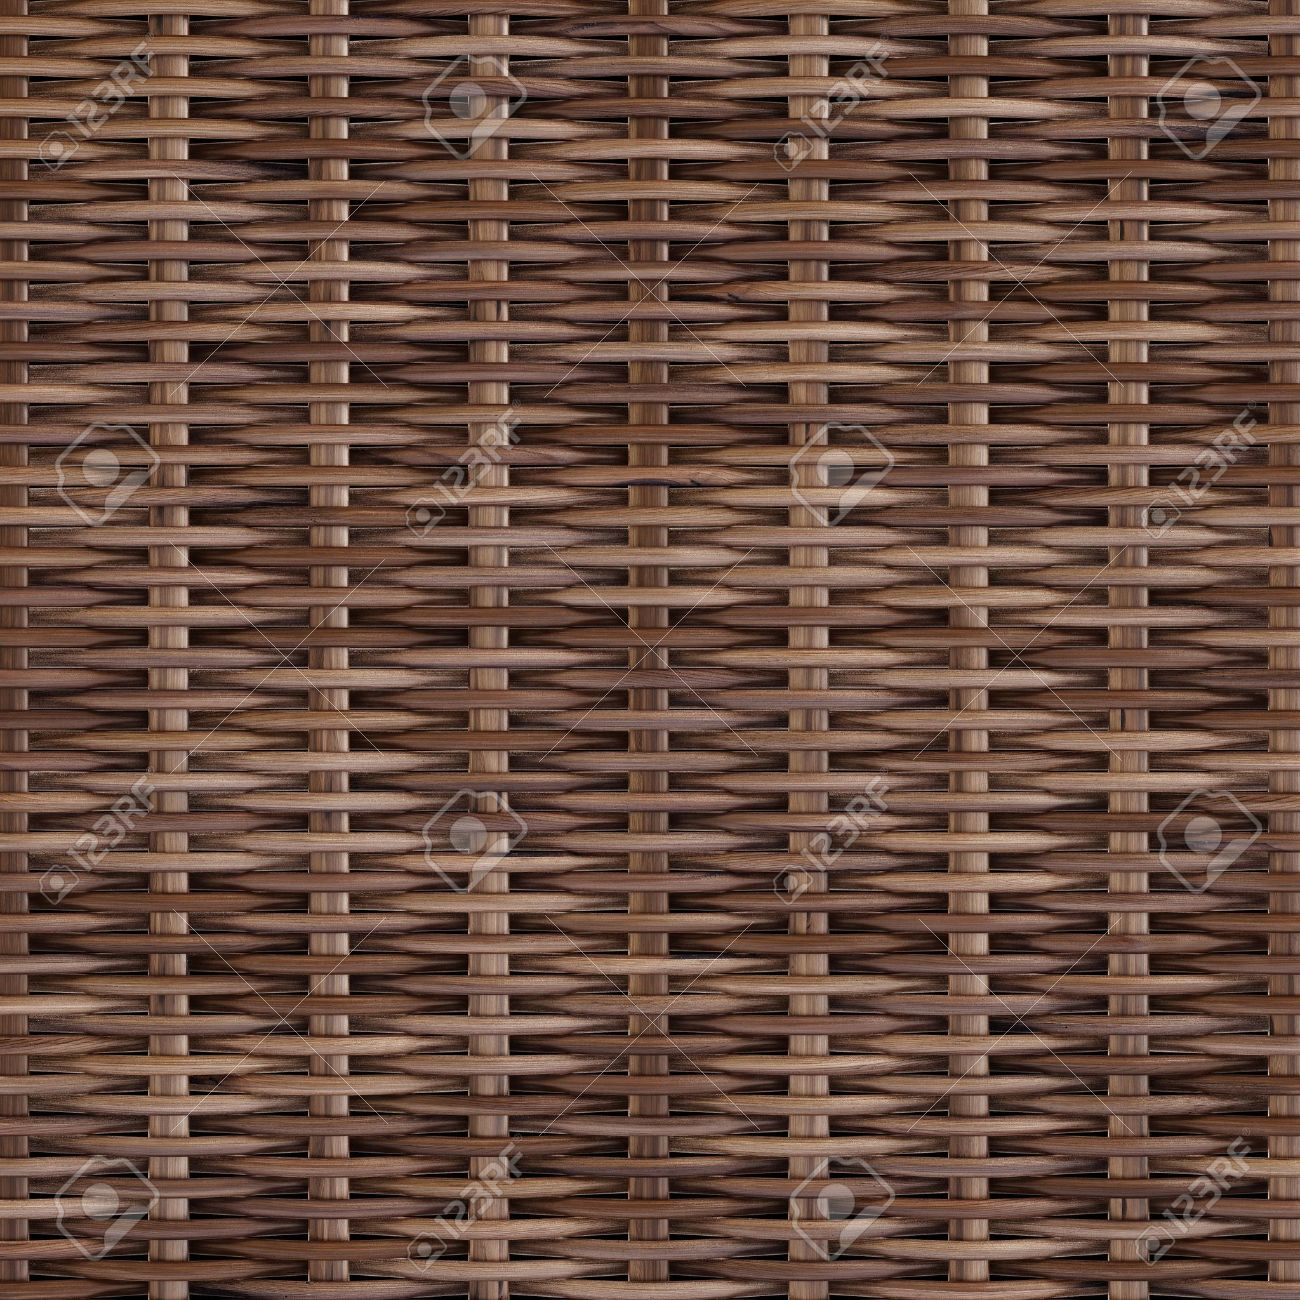 woven rattan with natural patterns Stock Photo - 12011201